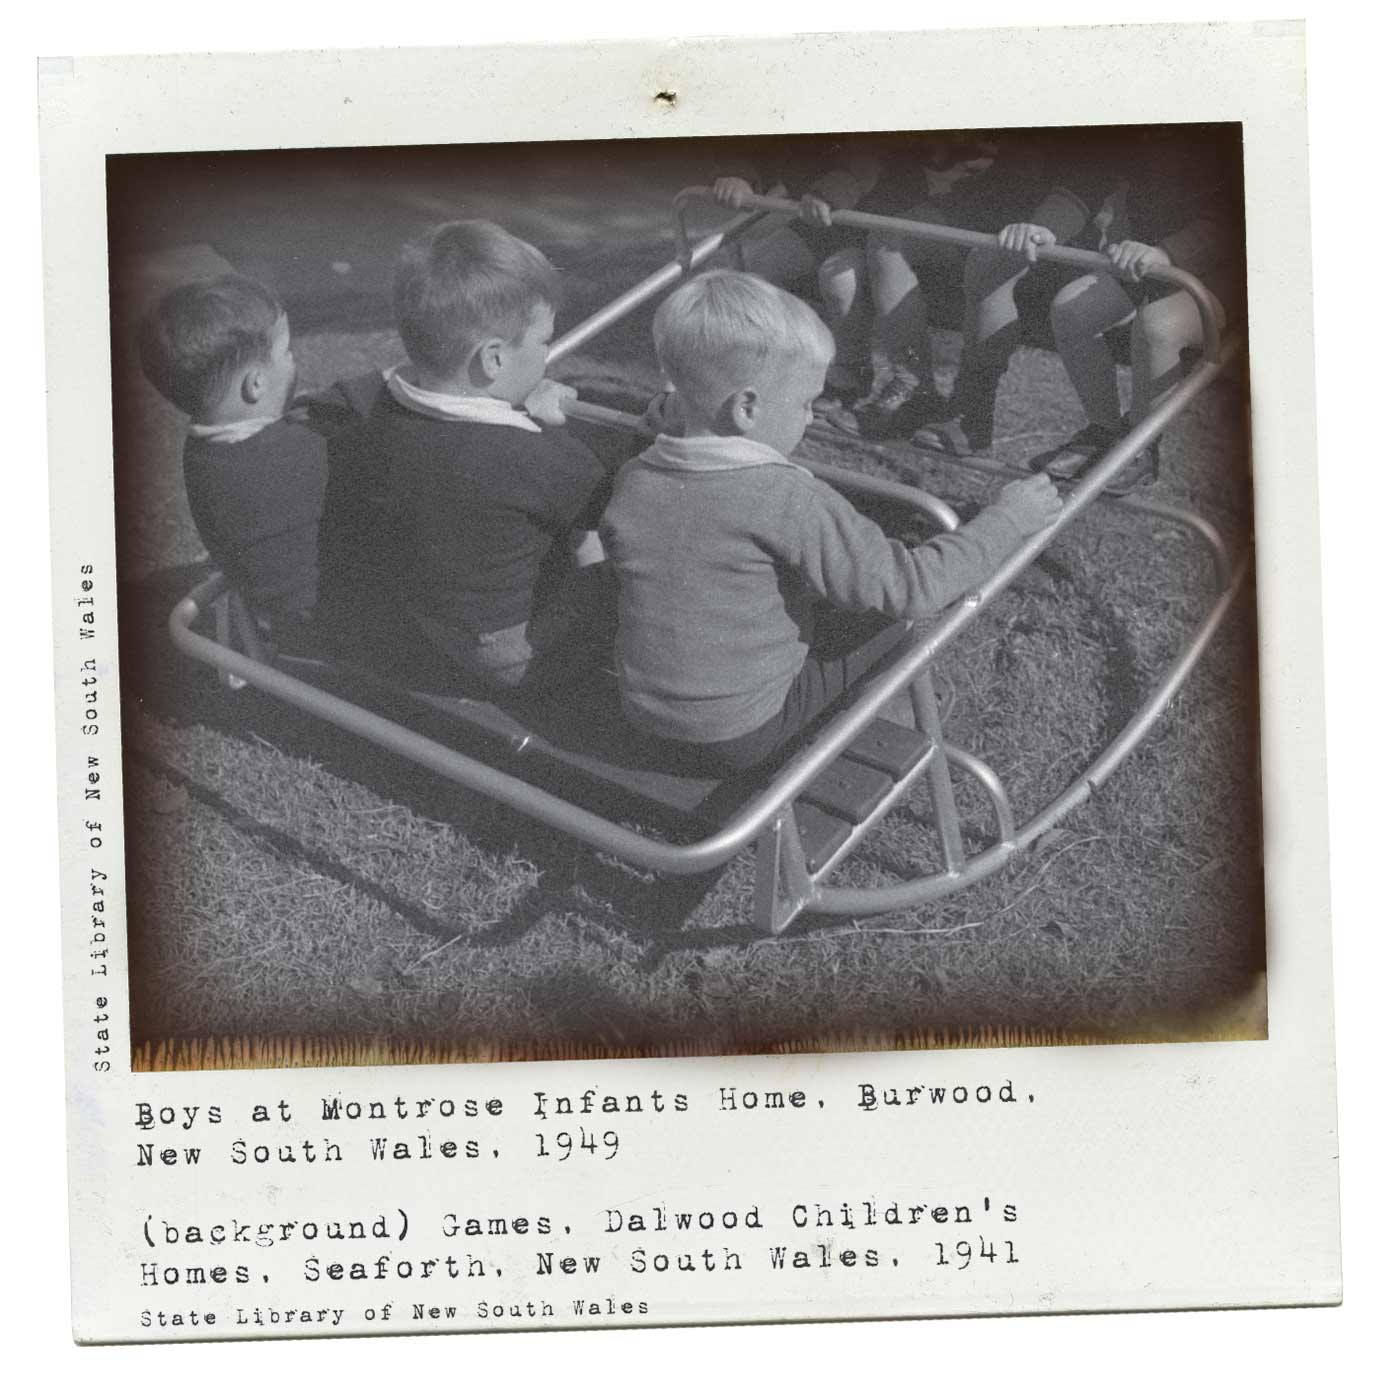 Polaroid photograph showing a group of young boys laying on a rocker. Typewritten text underneath reads 'Boys at Montrose Infants Home, Burwood, New South Wales, 1949'. 'State Library of New South Wales' is written along the left side. - click to view larger image